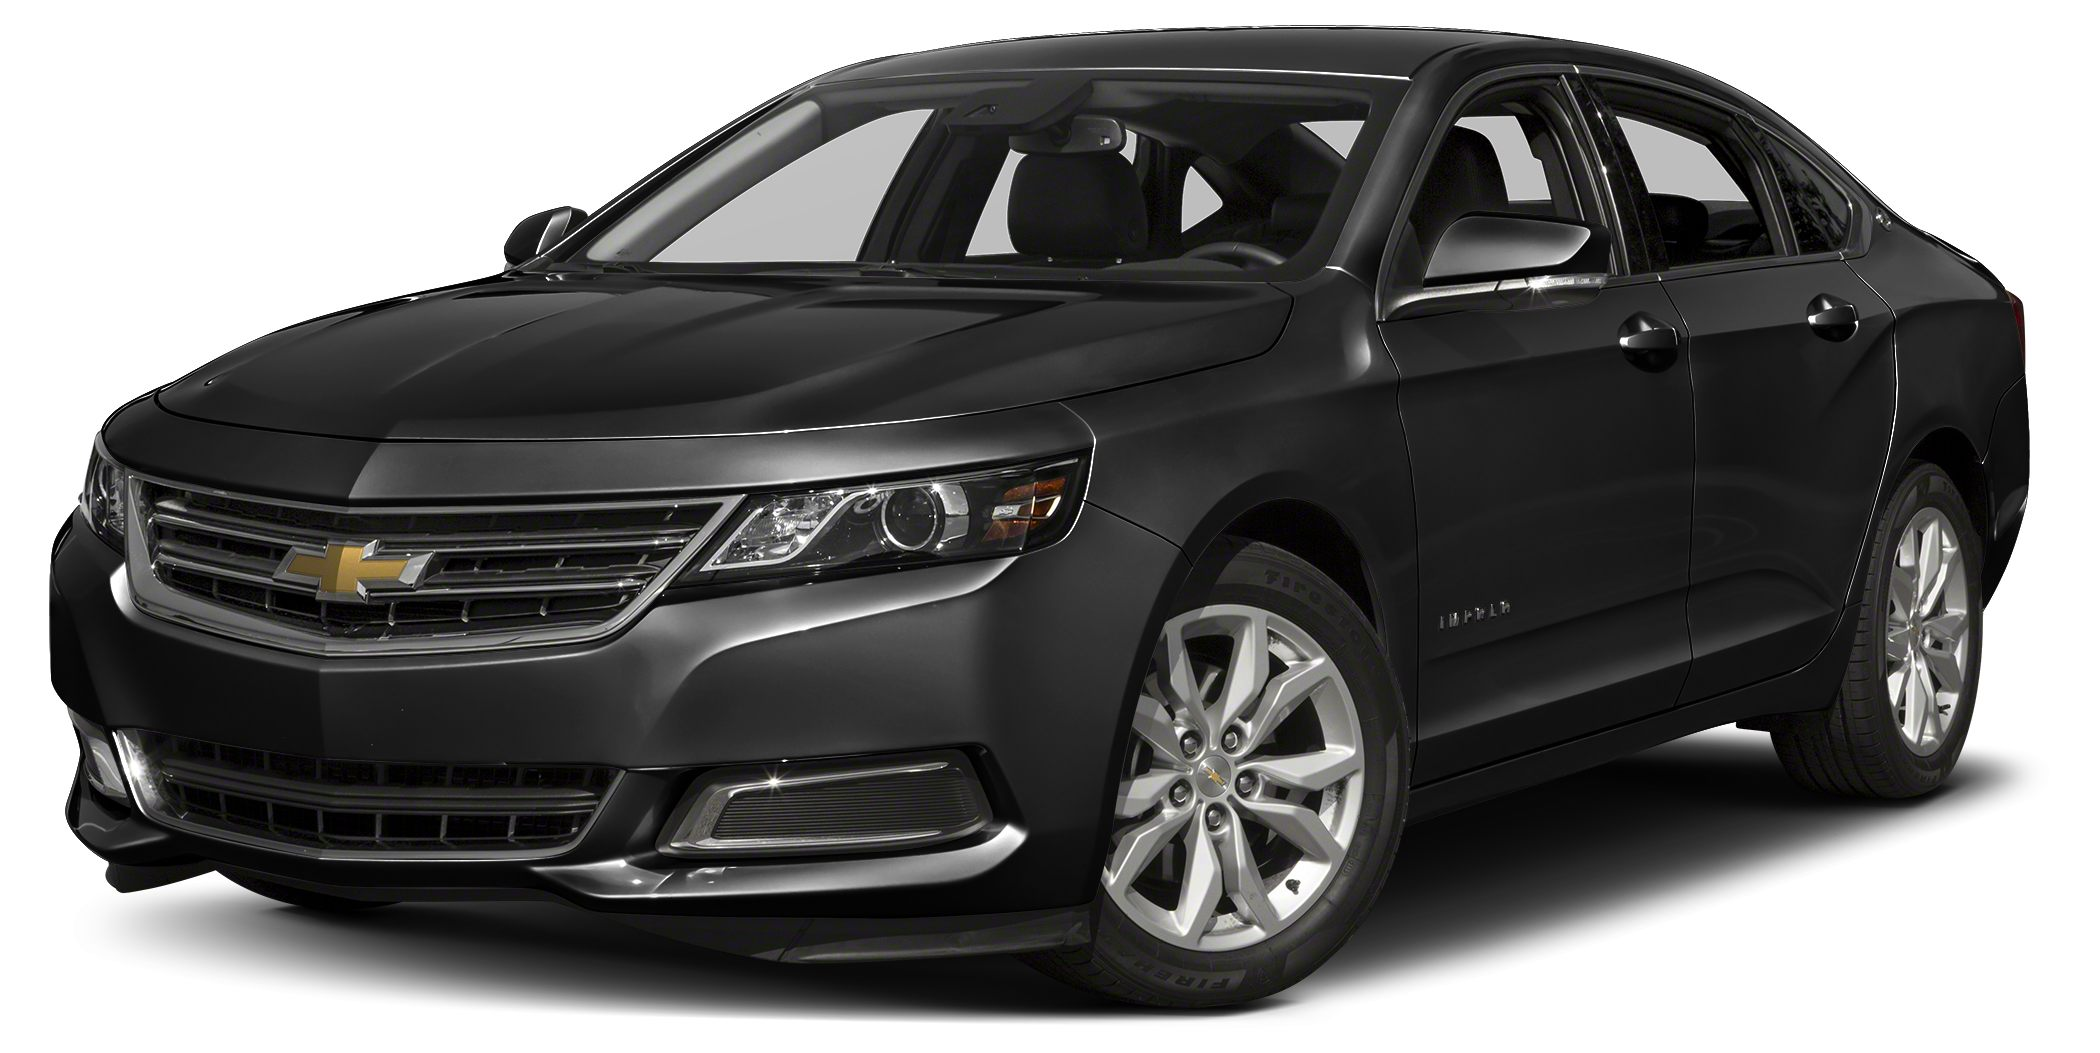 2016 Chevrolet Impala LT w2LT Look forward to long road trips with anti-lock brakes traction con